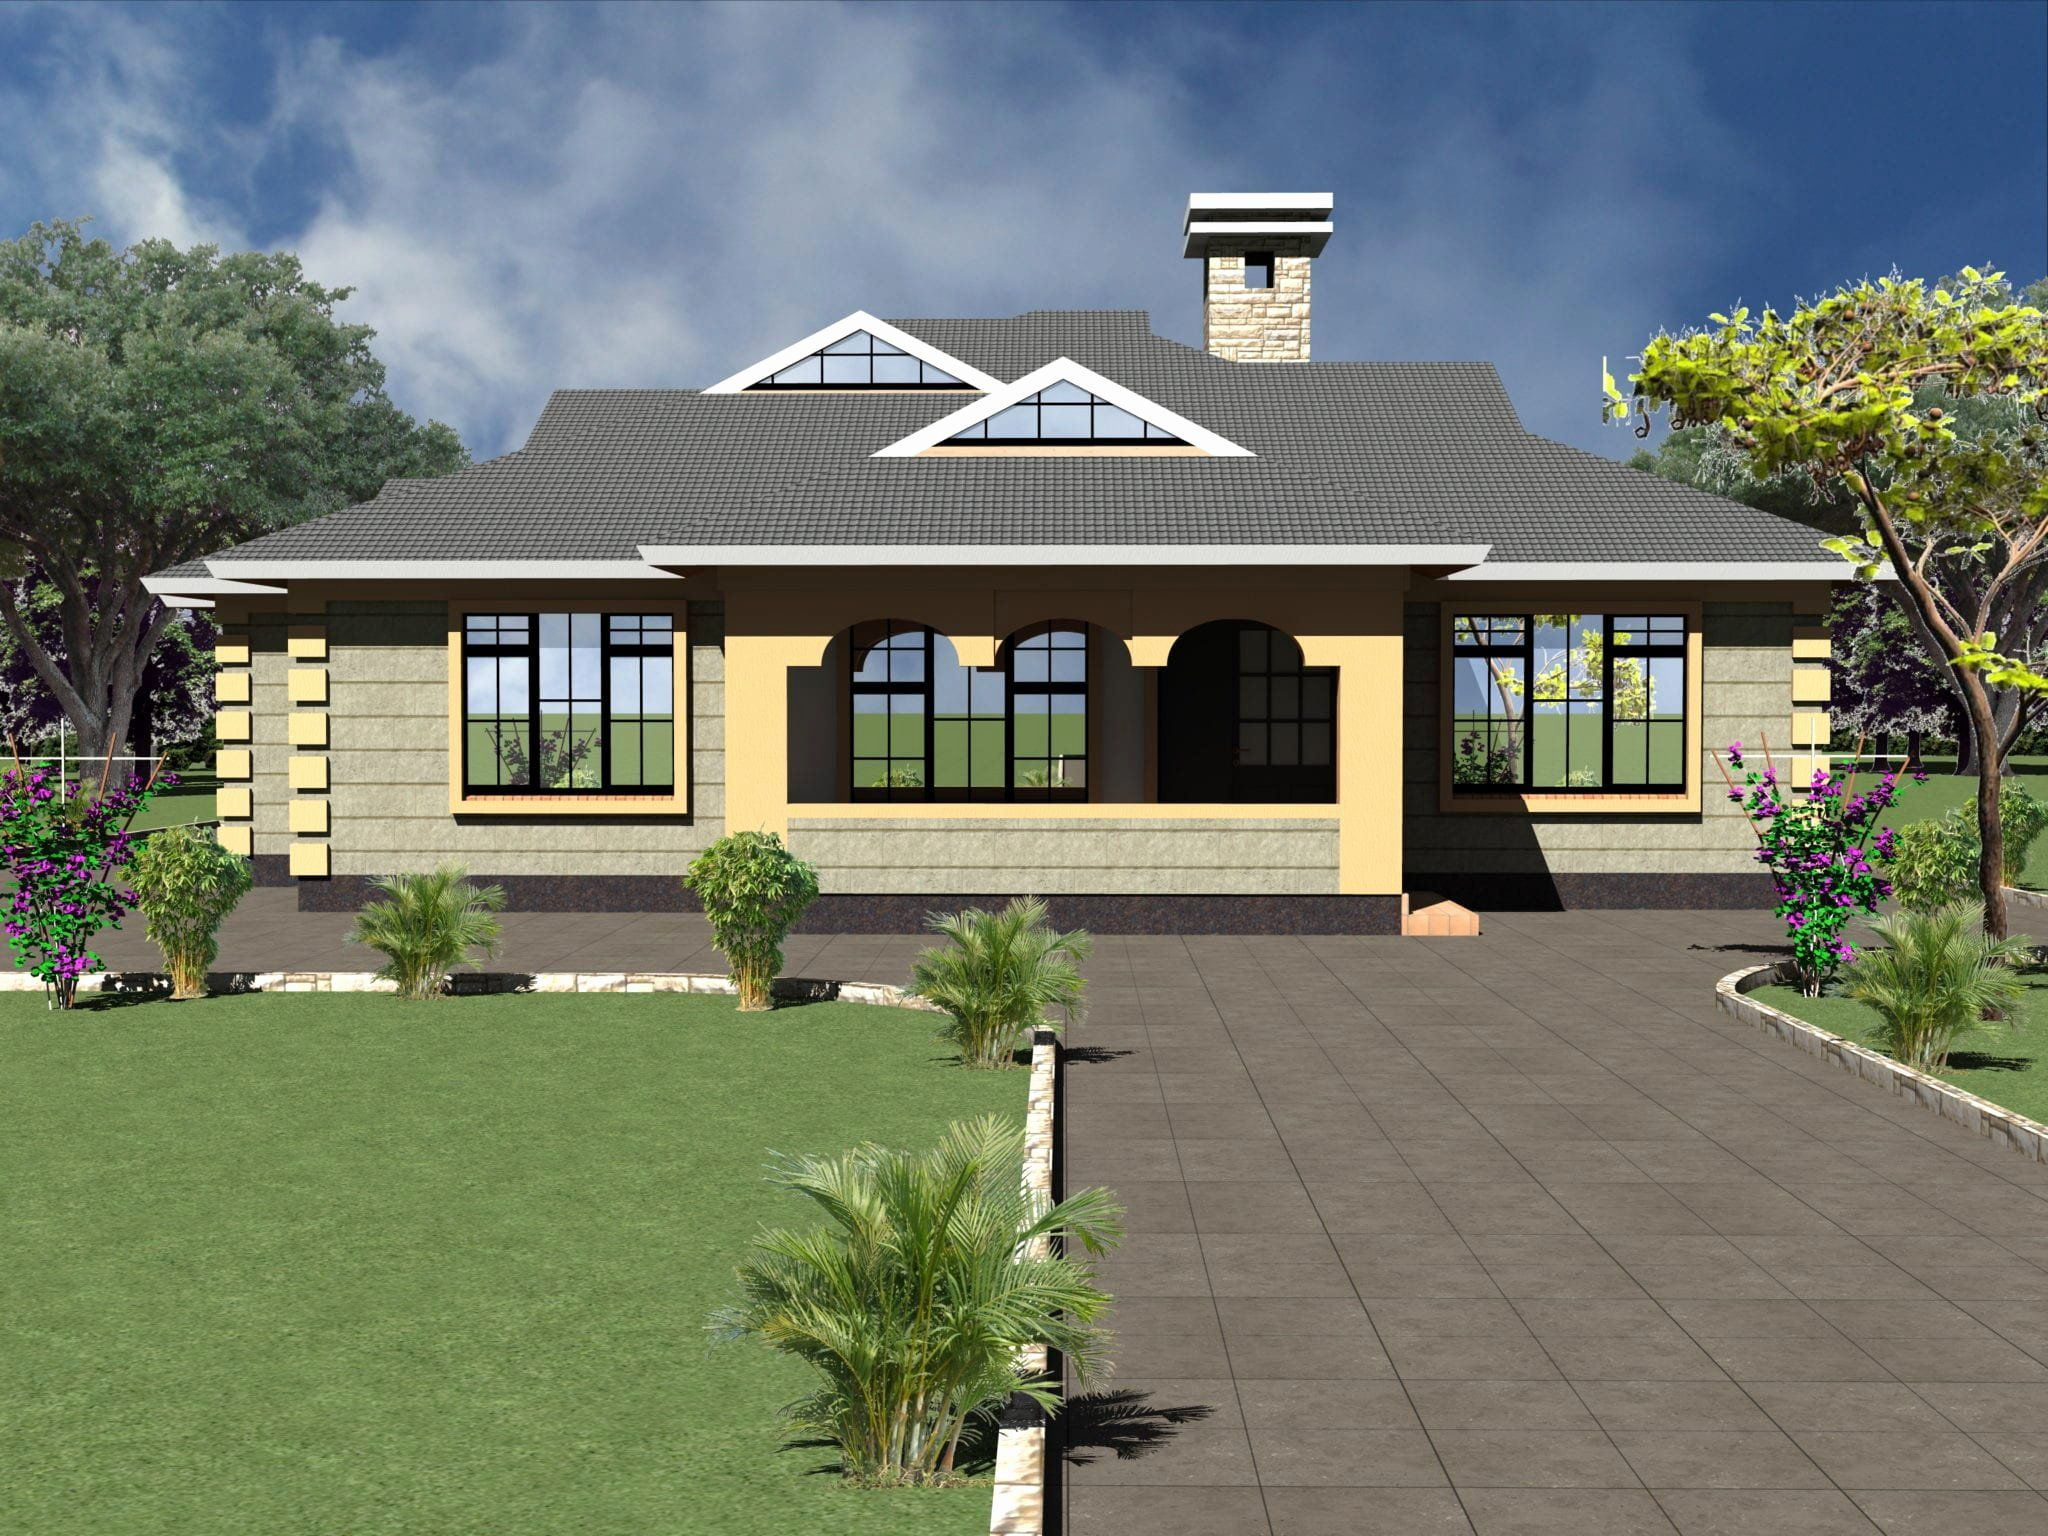 4 Bed House Plans Lovely Four Bedroom Bungalow House Plans In Kenya Bungalow House Plans Country Cottage House Plans Beach Style House Plans